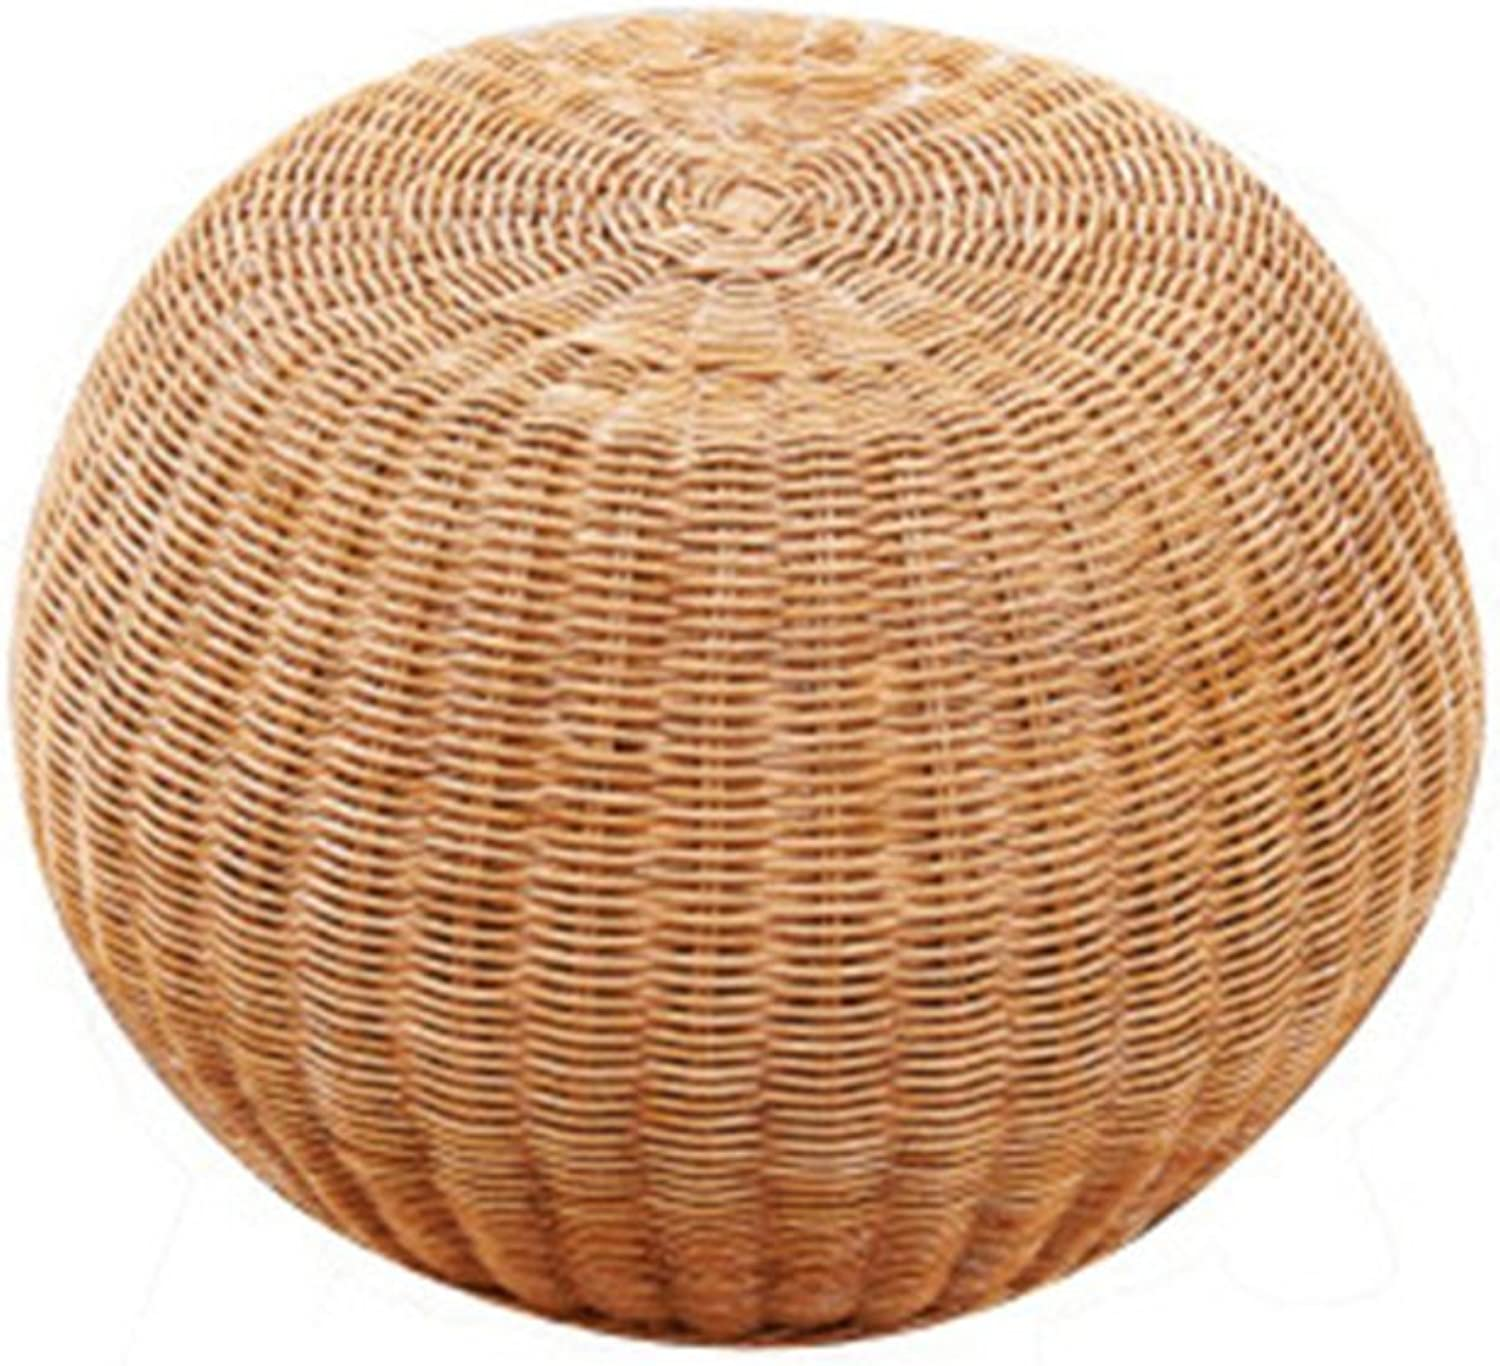 FORWIN US Stool- Stool Round Rattan Drum Chair shoes Bench Wooden shoes Stool Adult Seat Tea Stool Small Sofa Foot Makeup Stool Without Backrest 30 X 30 X 33 cm Stool (Size   303033)